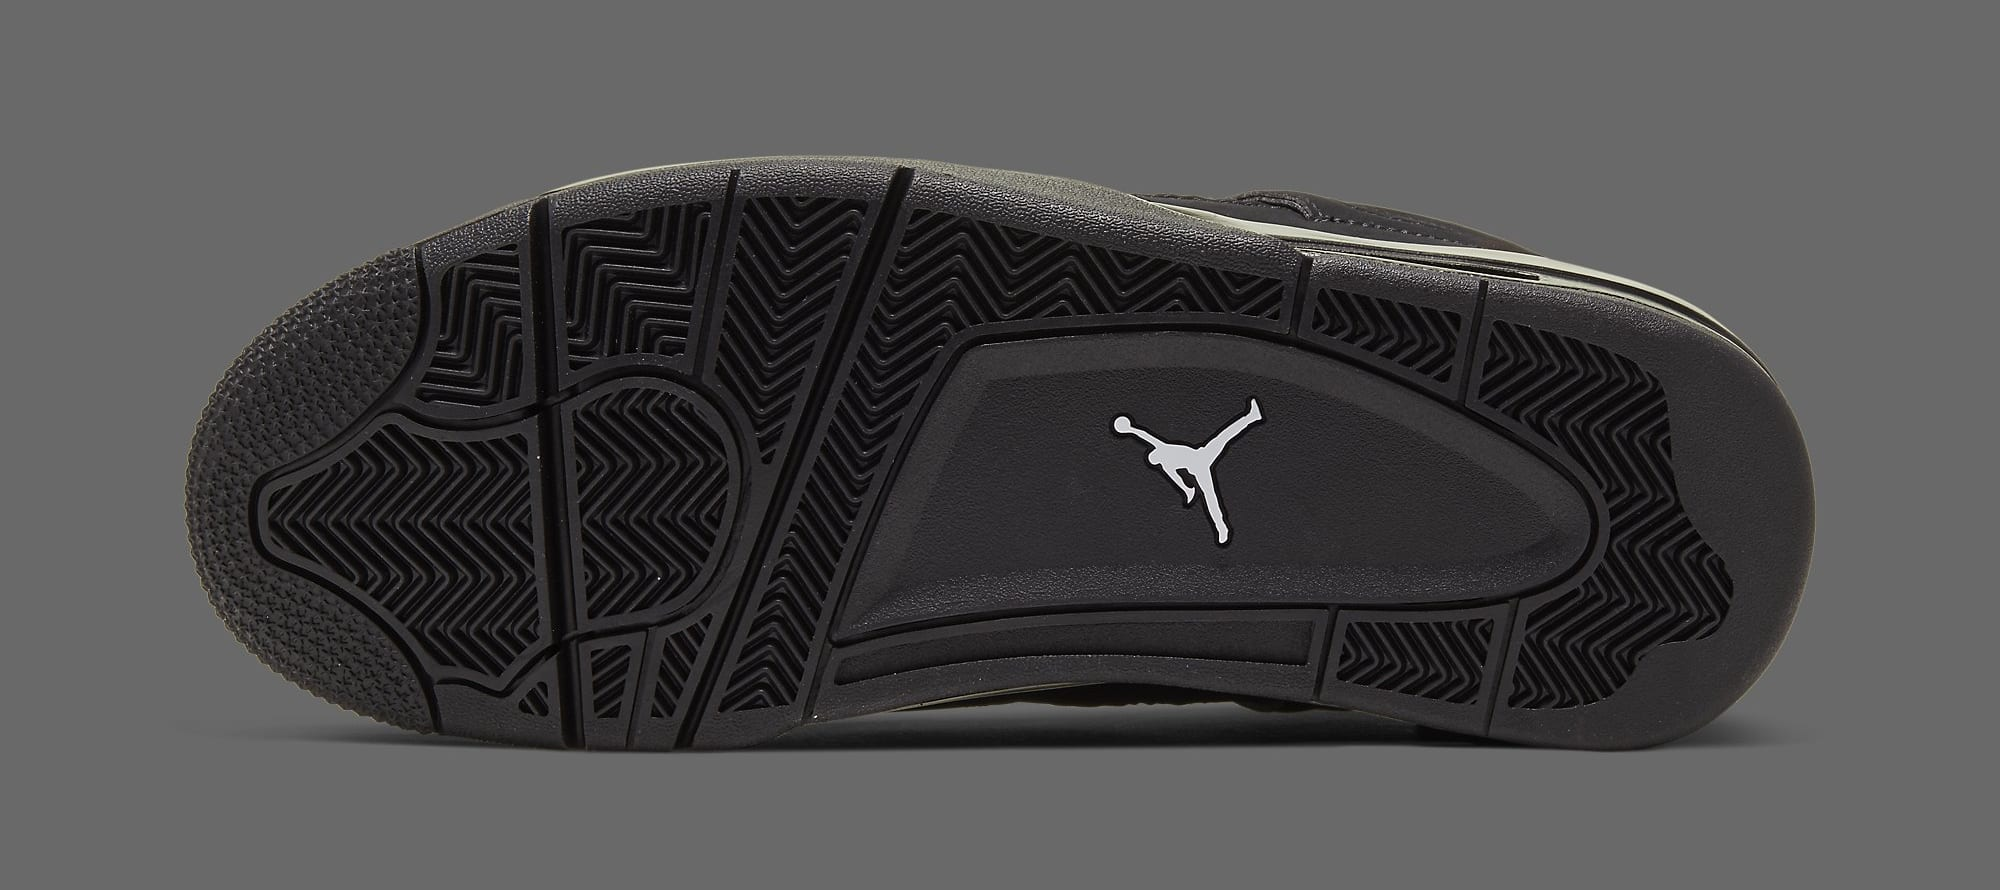 air-jordan-4-iv-retro-black-cat-2020-cu1110-010-outsole